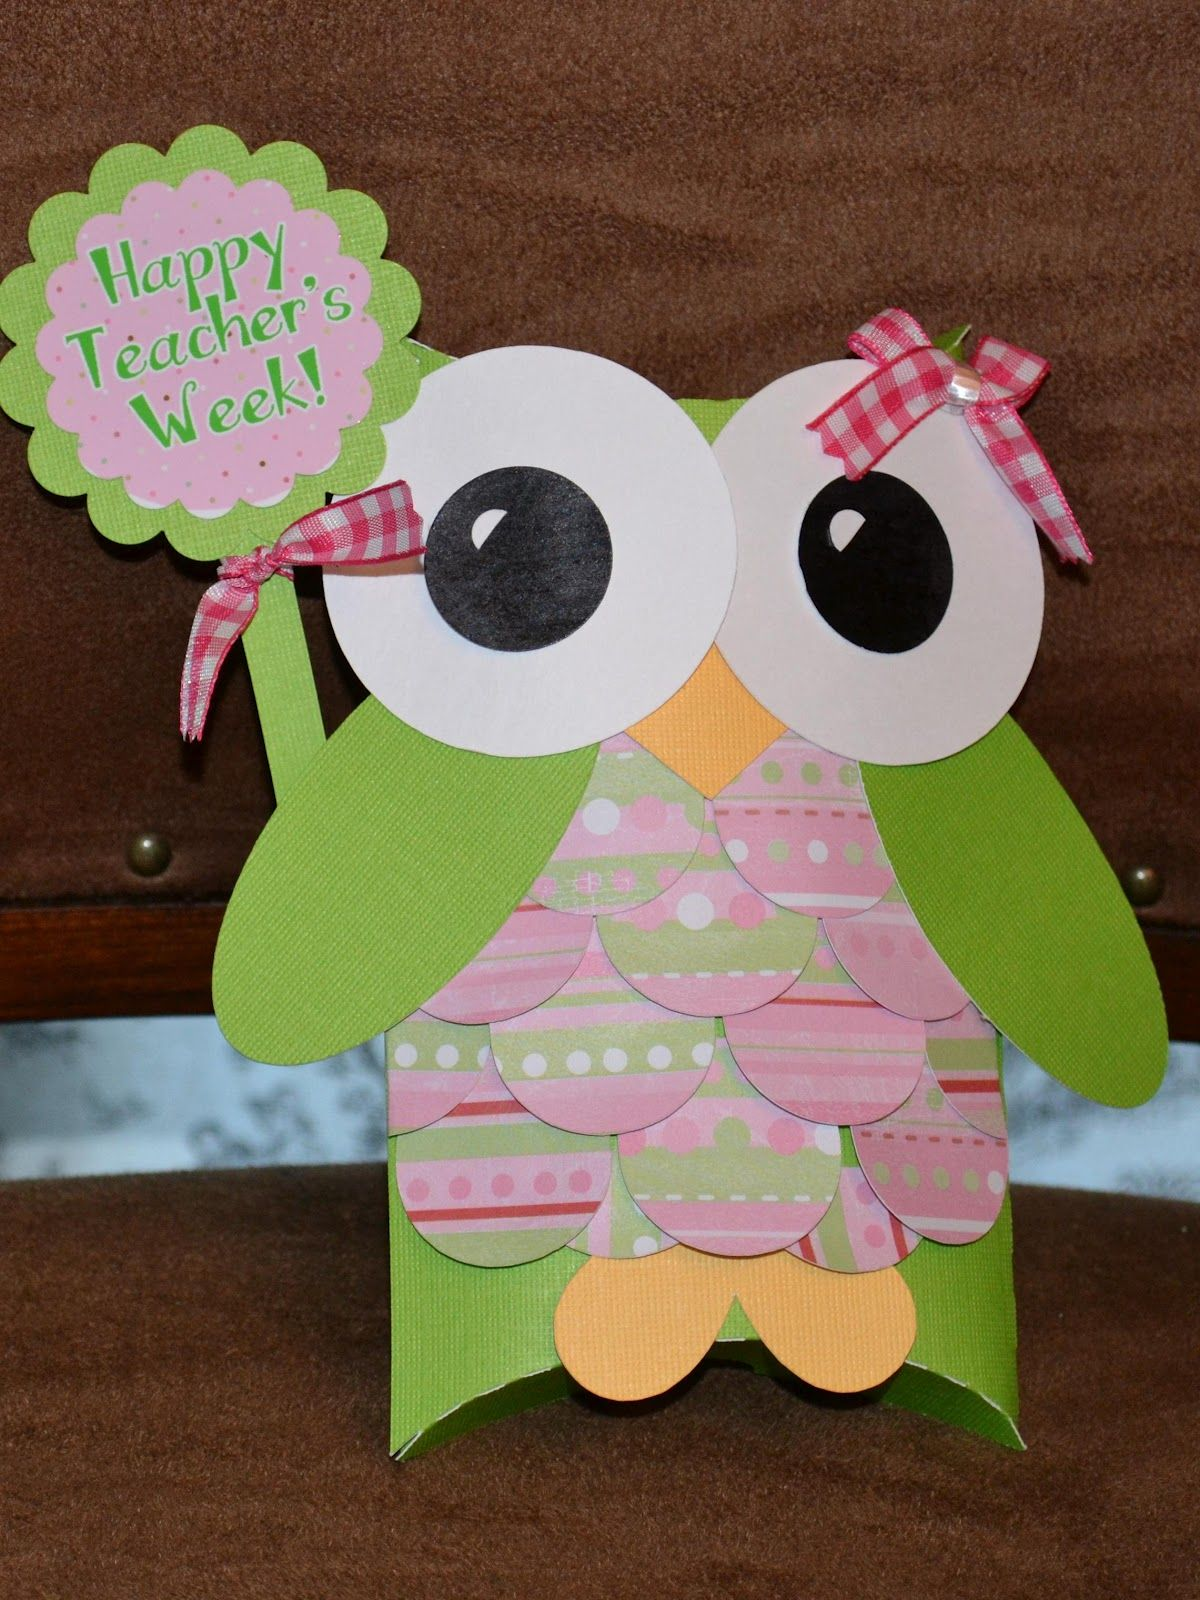 What I Am Making Tomorrow With The Kids For A